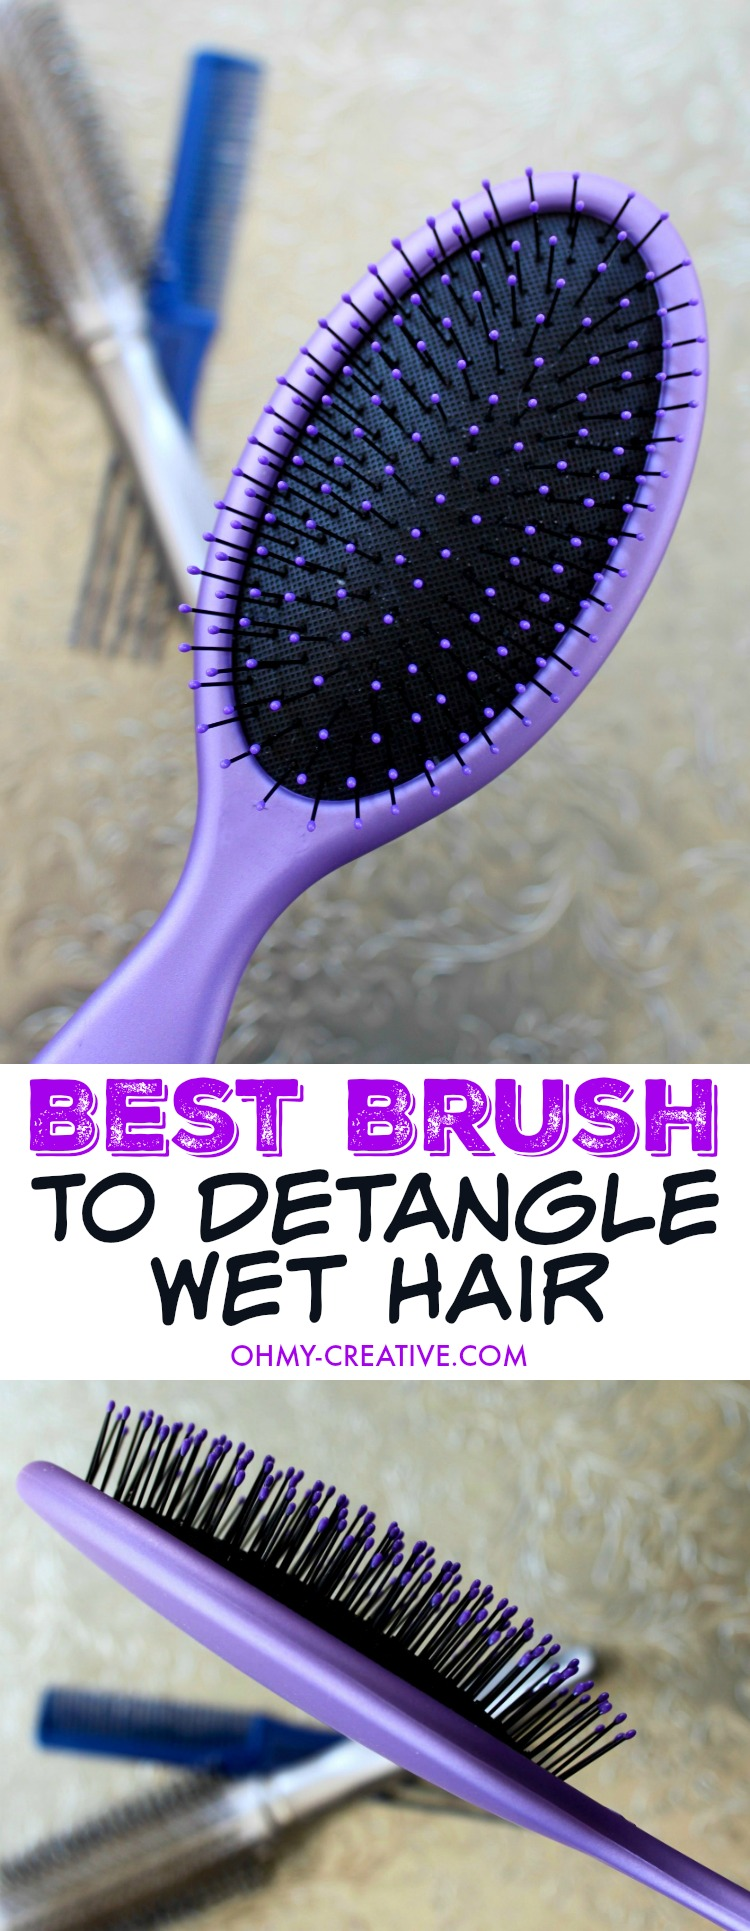 How To Detangle Hair? Don't endure another minute of cringe worthy hair tugging and pulling through knotted tangled hair! I found the Best Hair Brush to Detangle Hair when wet! Glides through wet hair with little effort - I love it! | OHMY-CREATIVE.COM